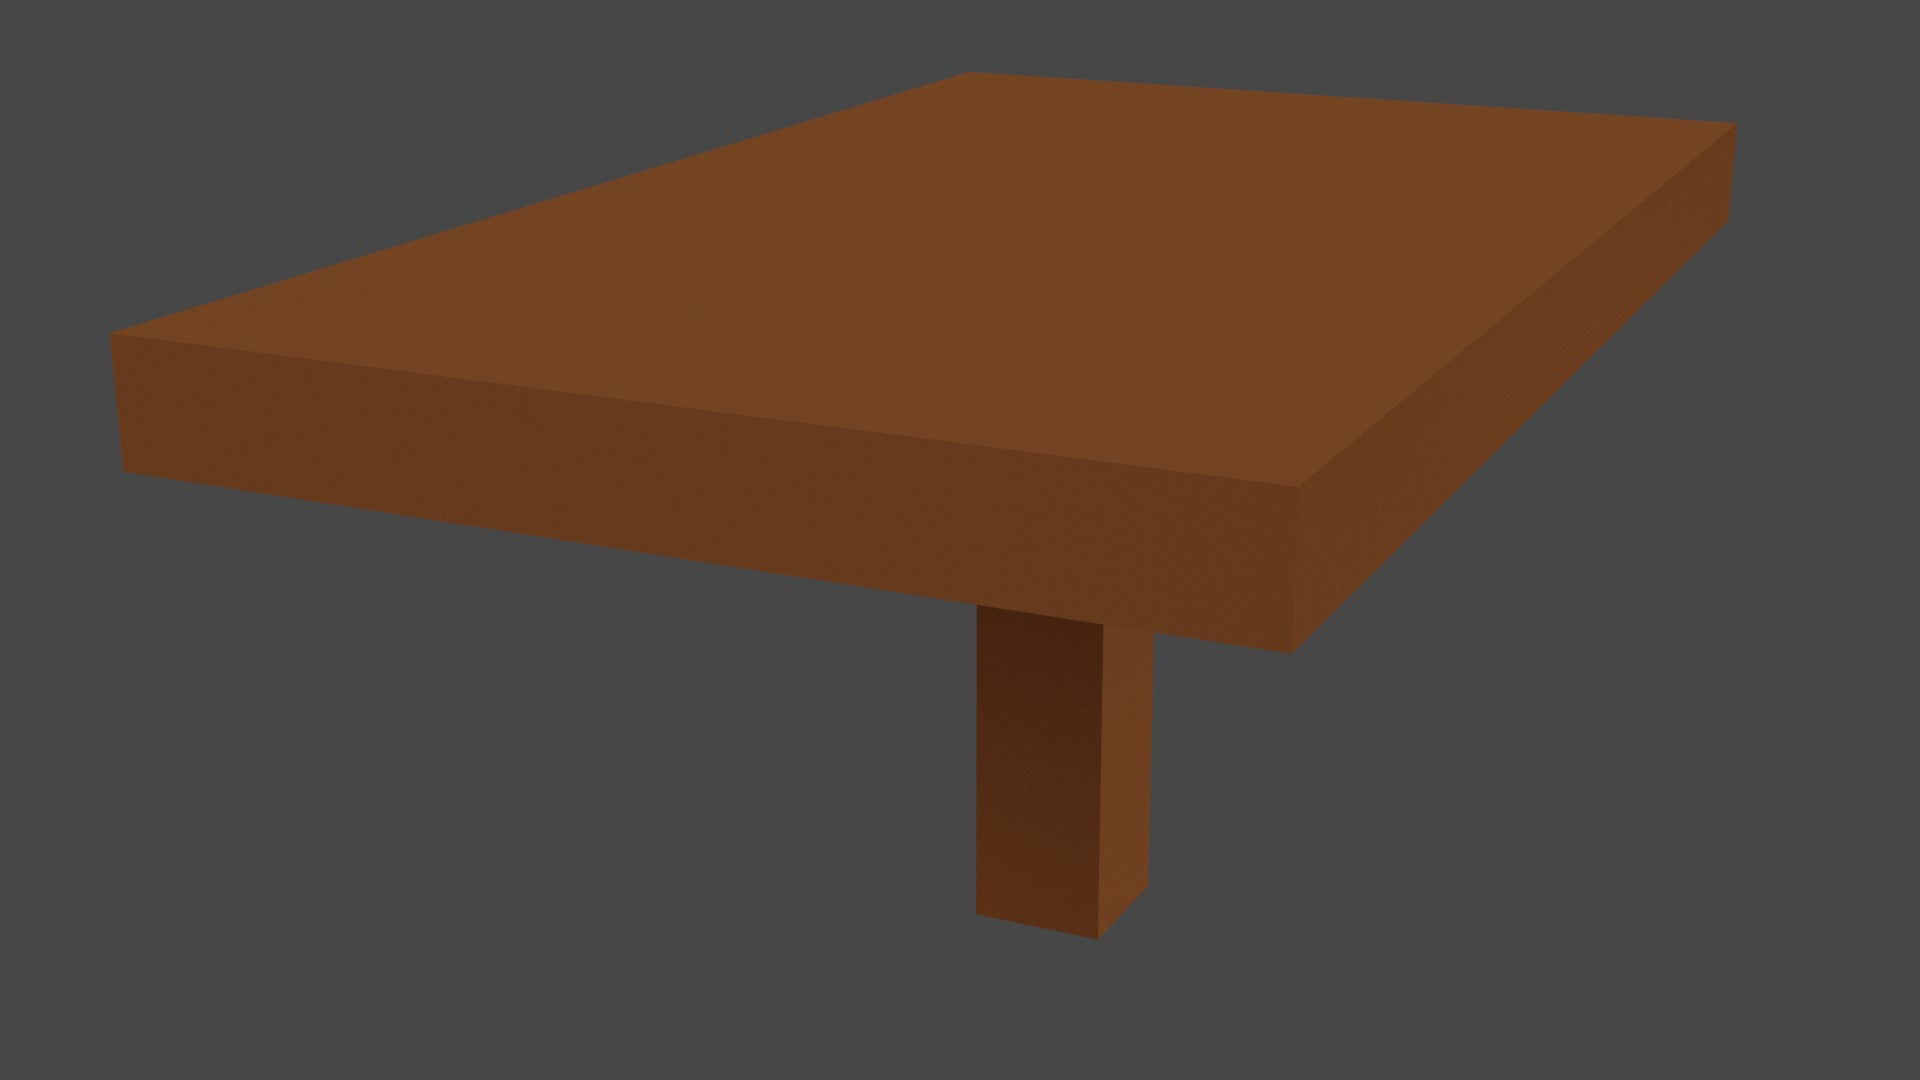 Low Poly Furniture 14